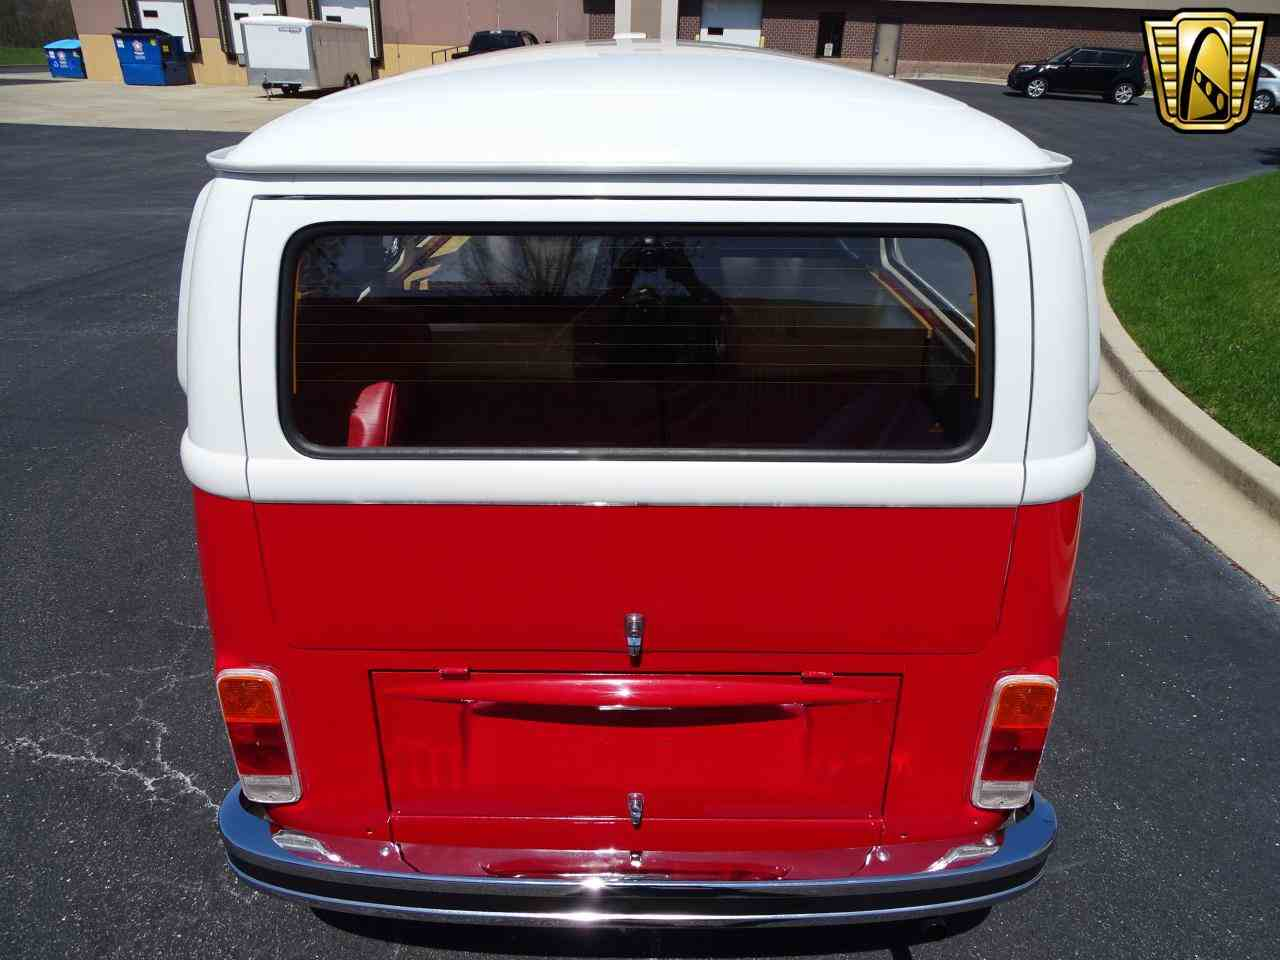 Large Picture of '74 Volkswagen Westfalia Camper located in Illinois - $34,995.00 Offered by Gateway Classic Cars - St. Louis - NEEL